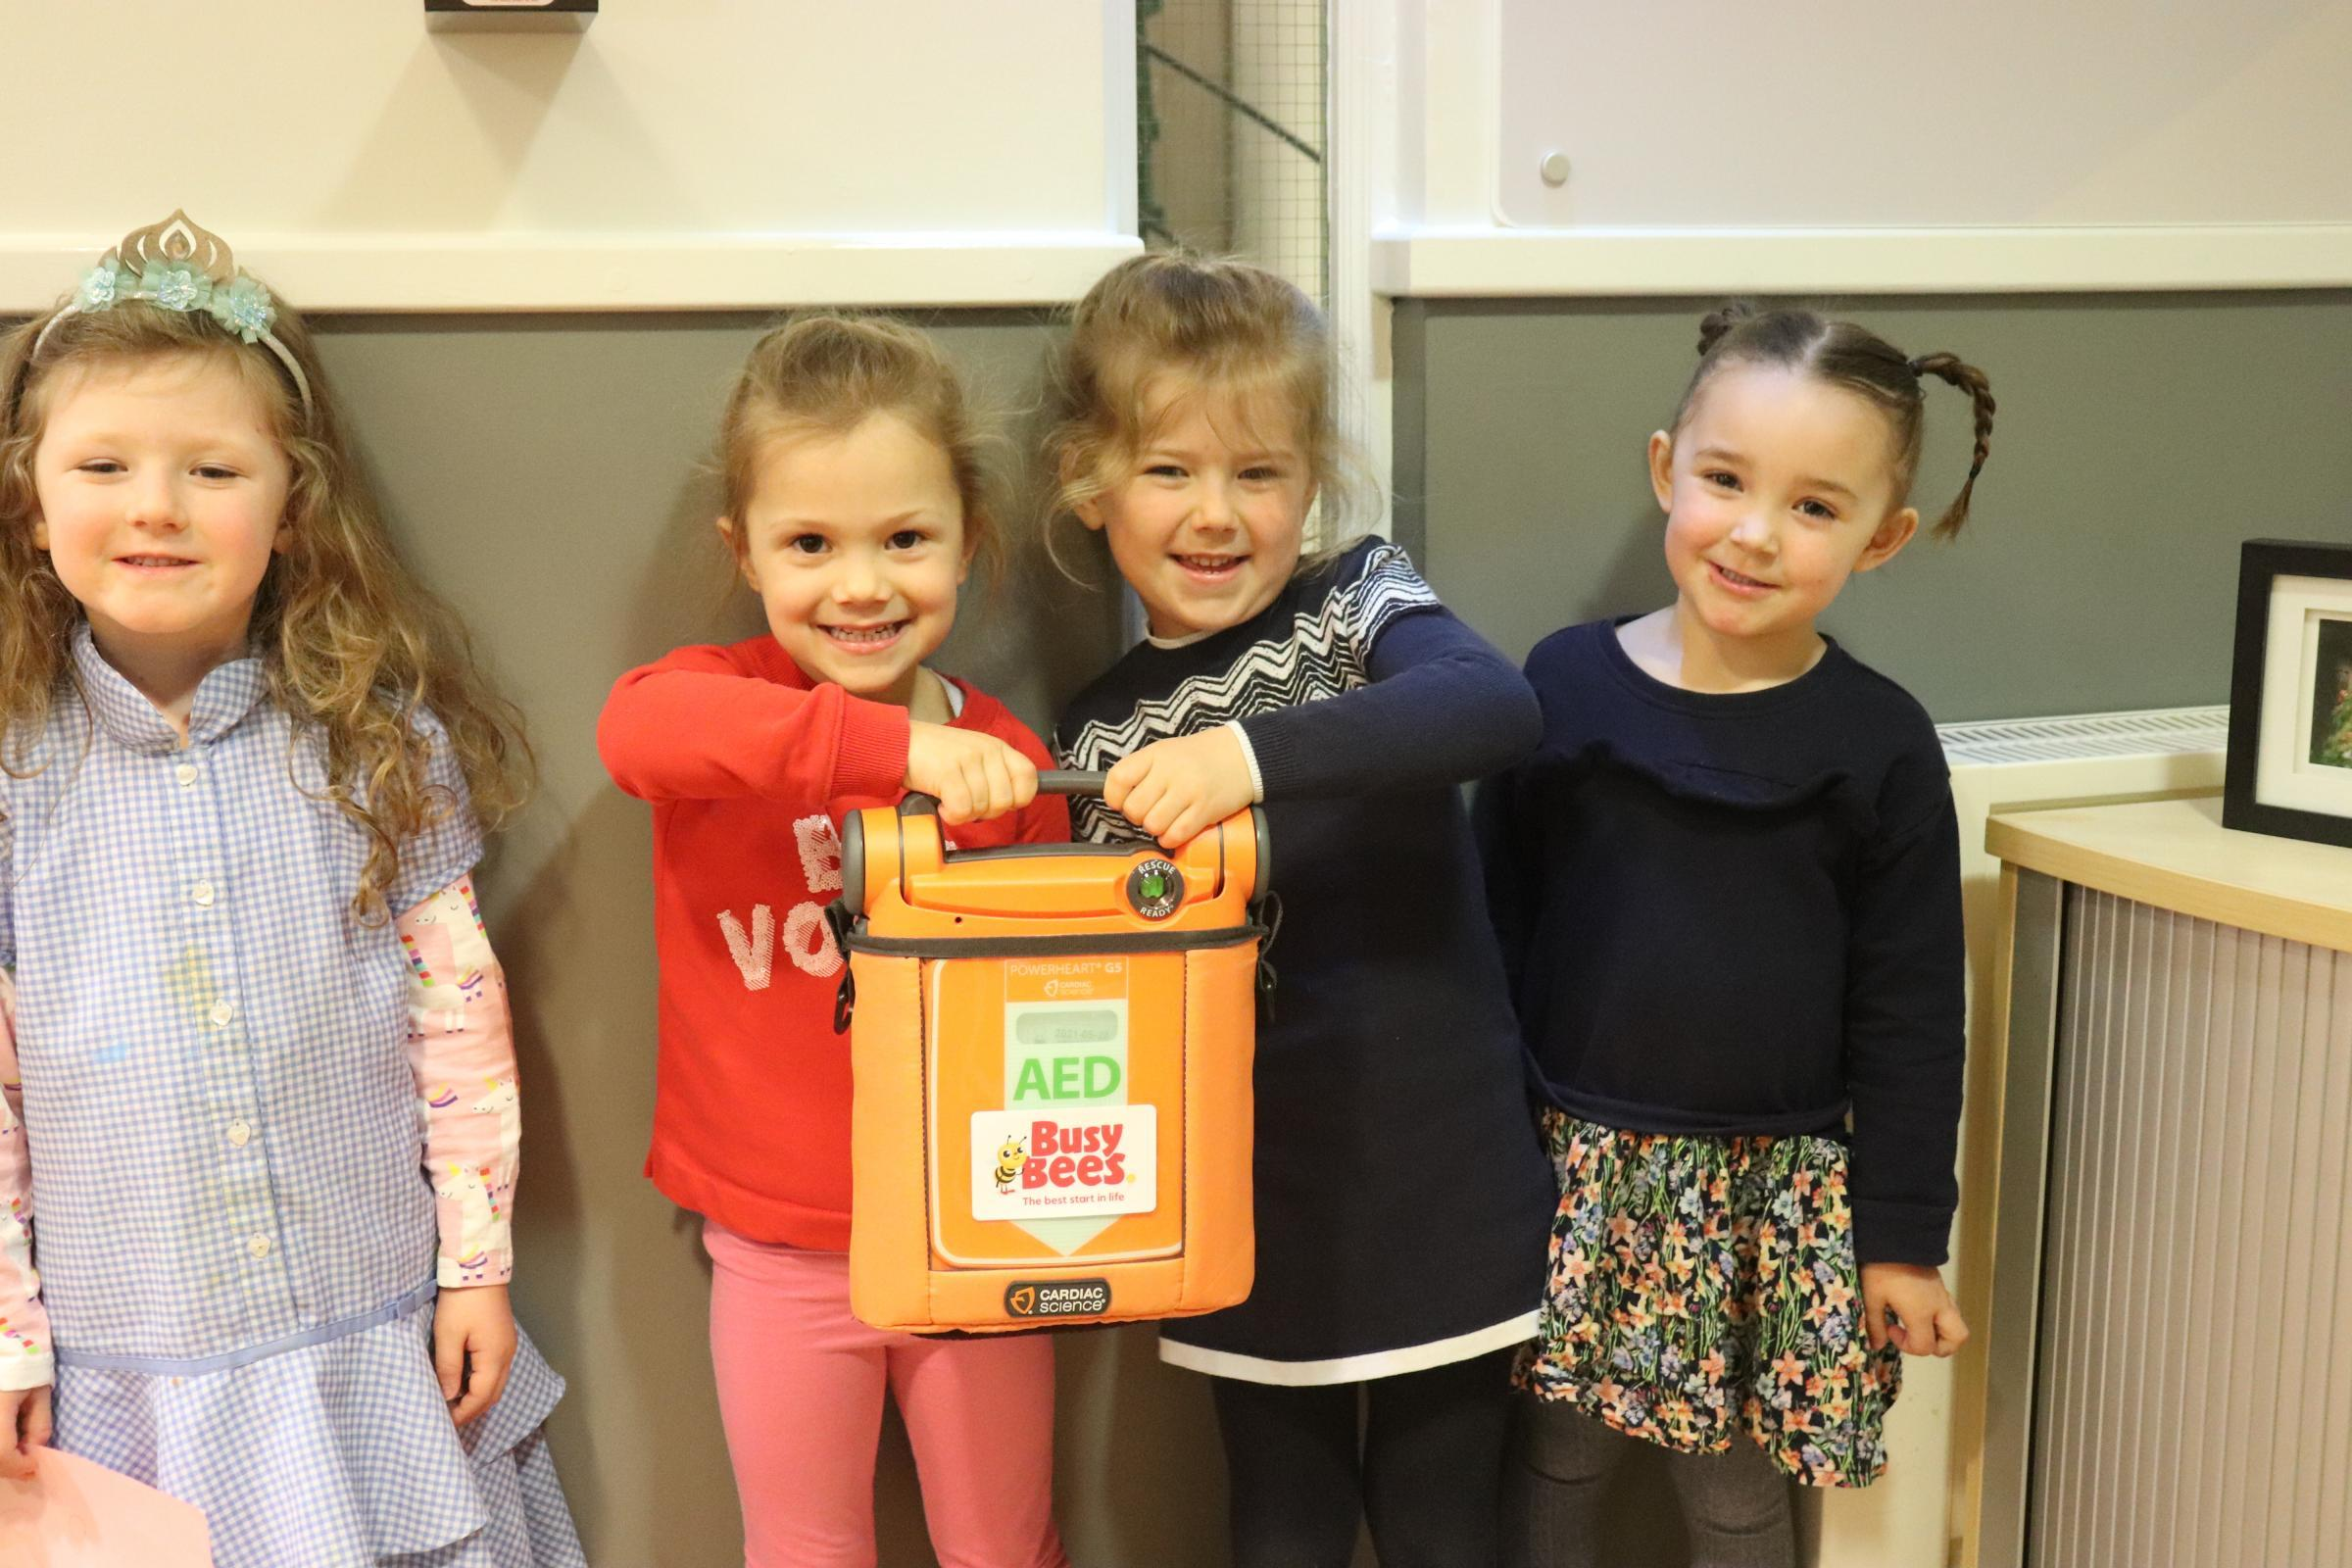 SAFETY: Children at Busy Bees with the defibrillator